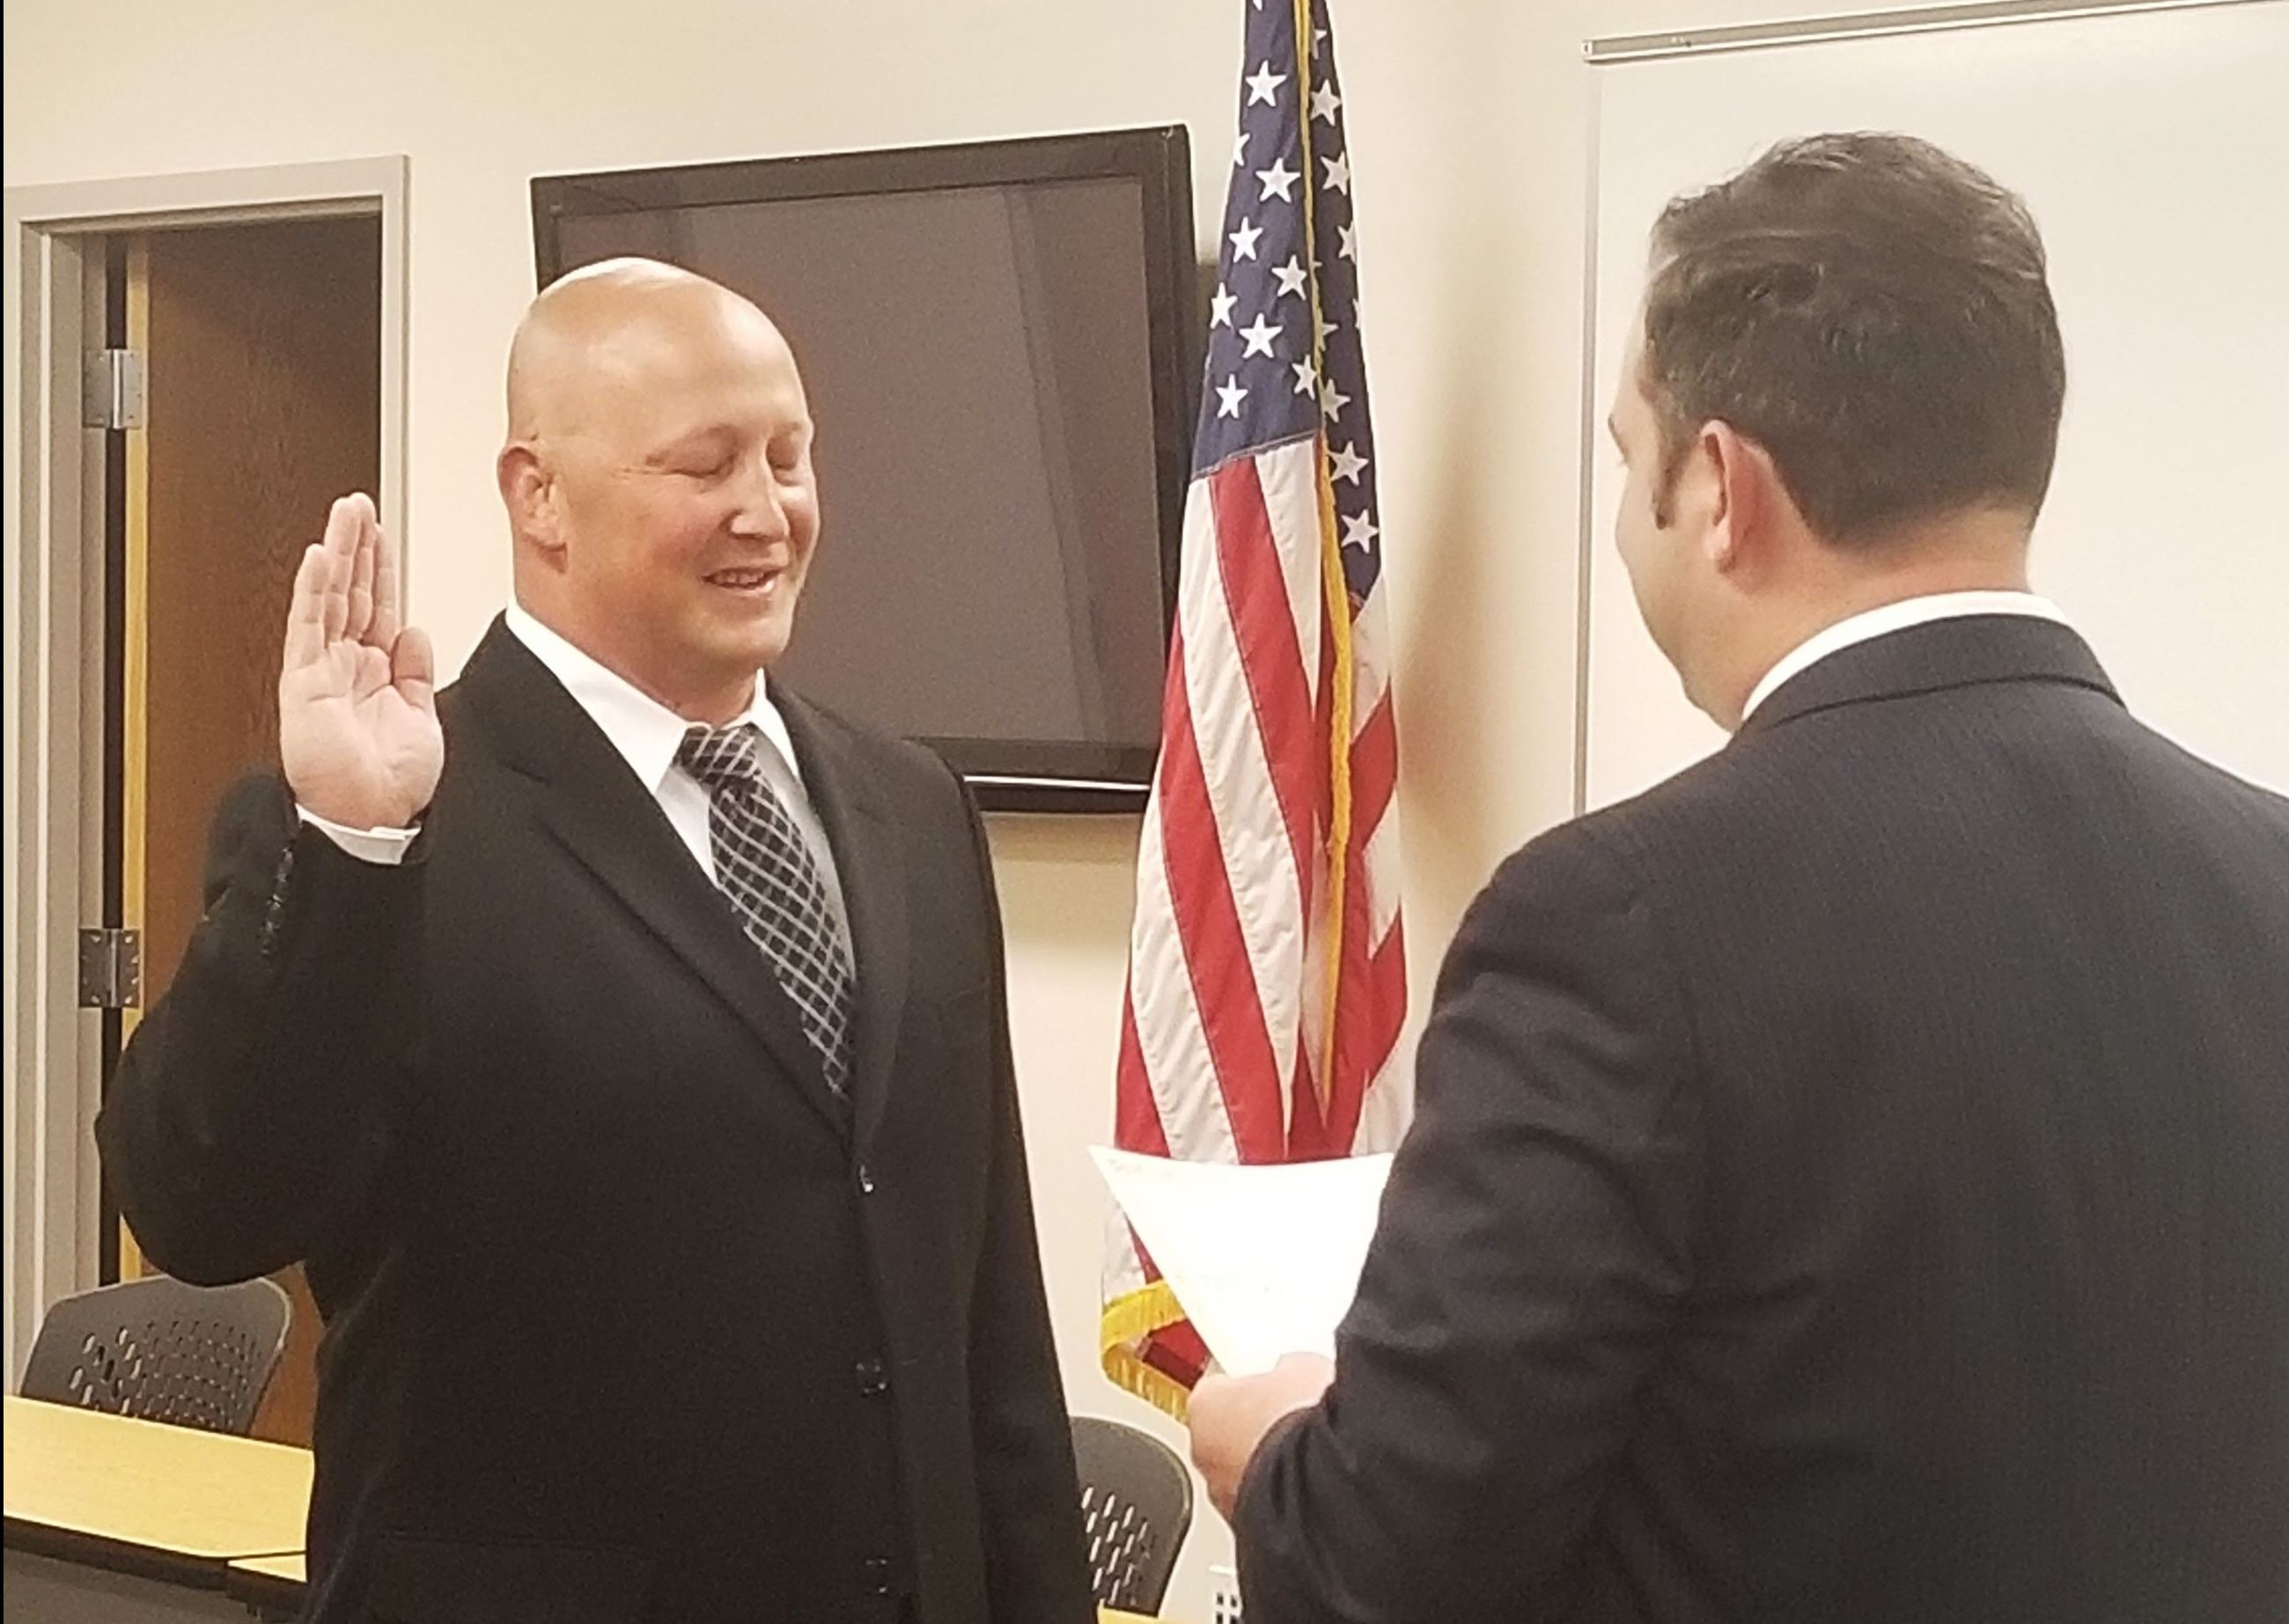 Swearing In - Jason Tentler 8-15-2018